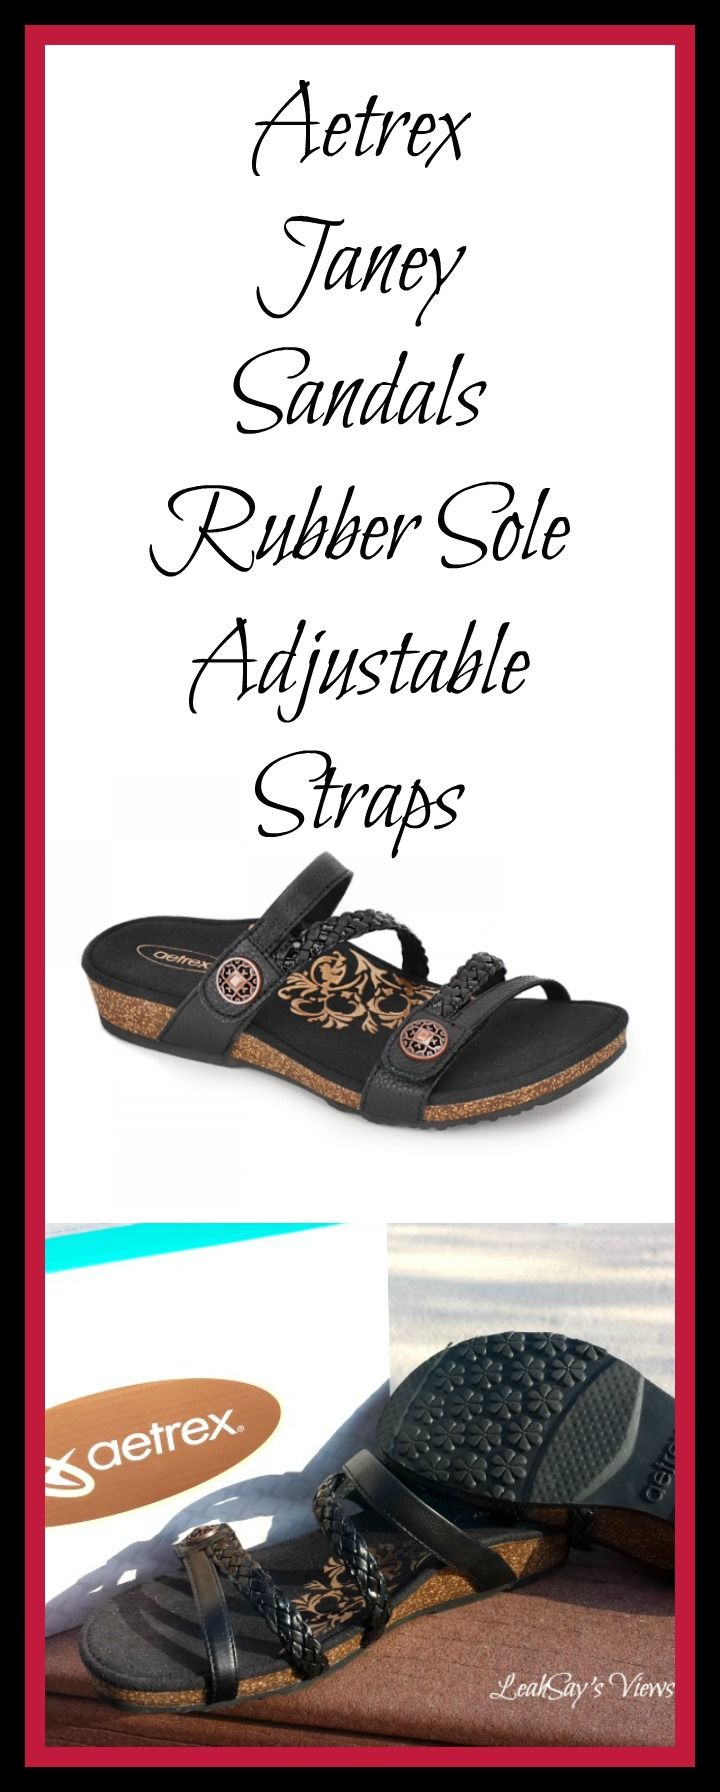 9faea0b30 Shop Aetrex Newest Shoe Arrivals Online Prepare For Winter And Be Ready  When Summer Rolls Back Around.  ad  shoes  sandals  ad  Aetrexworldwide